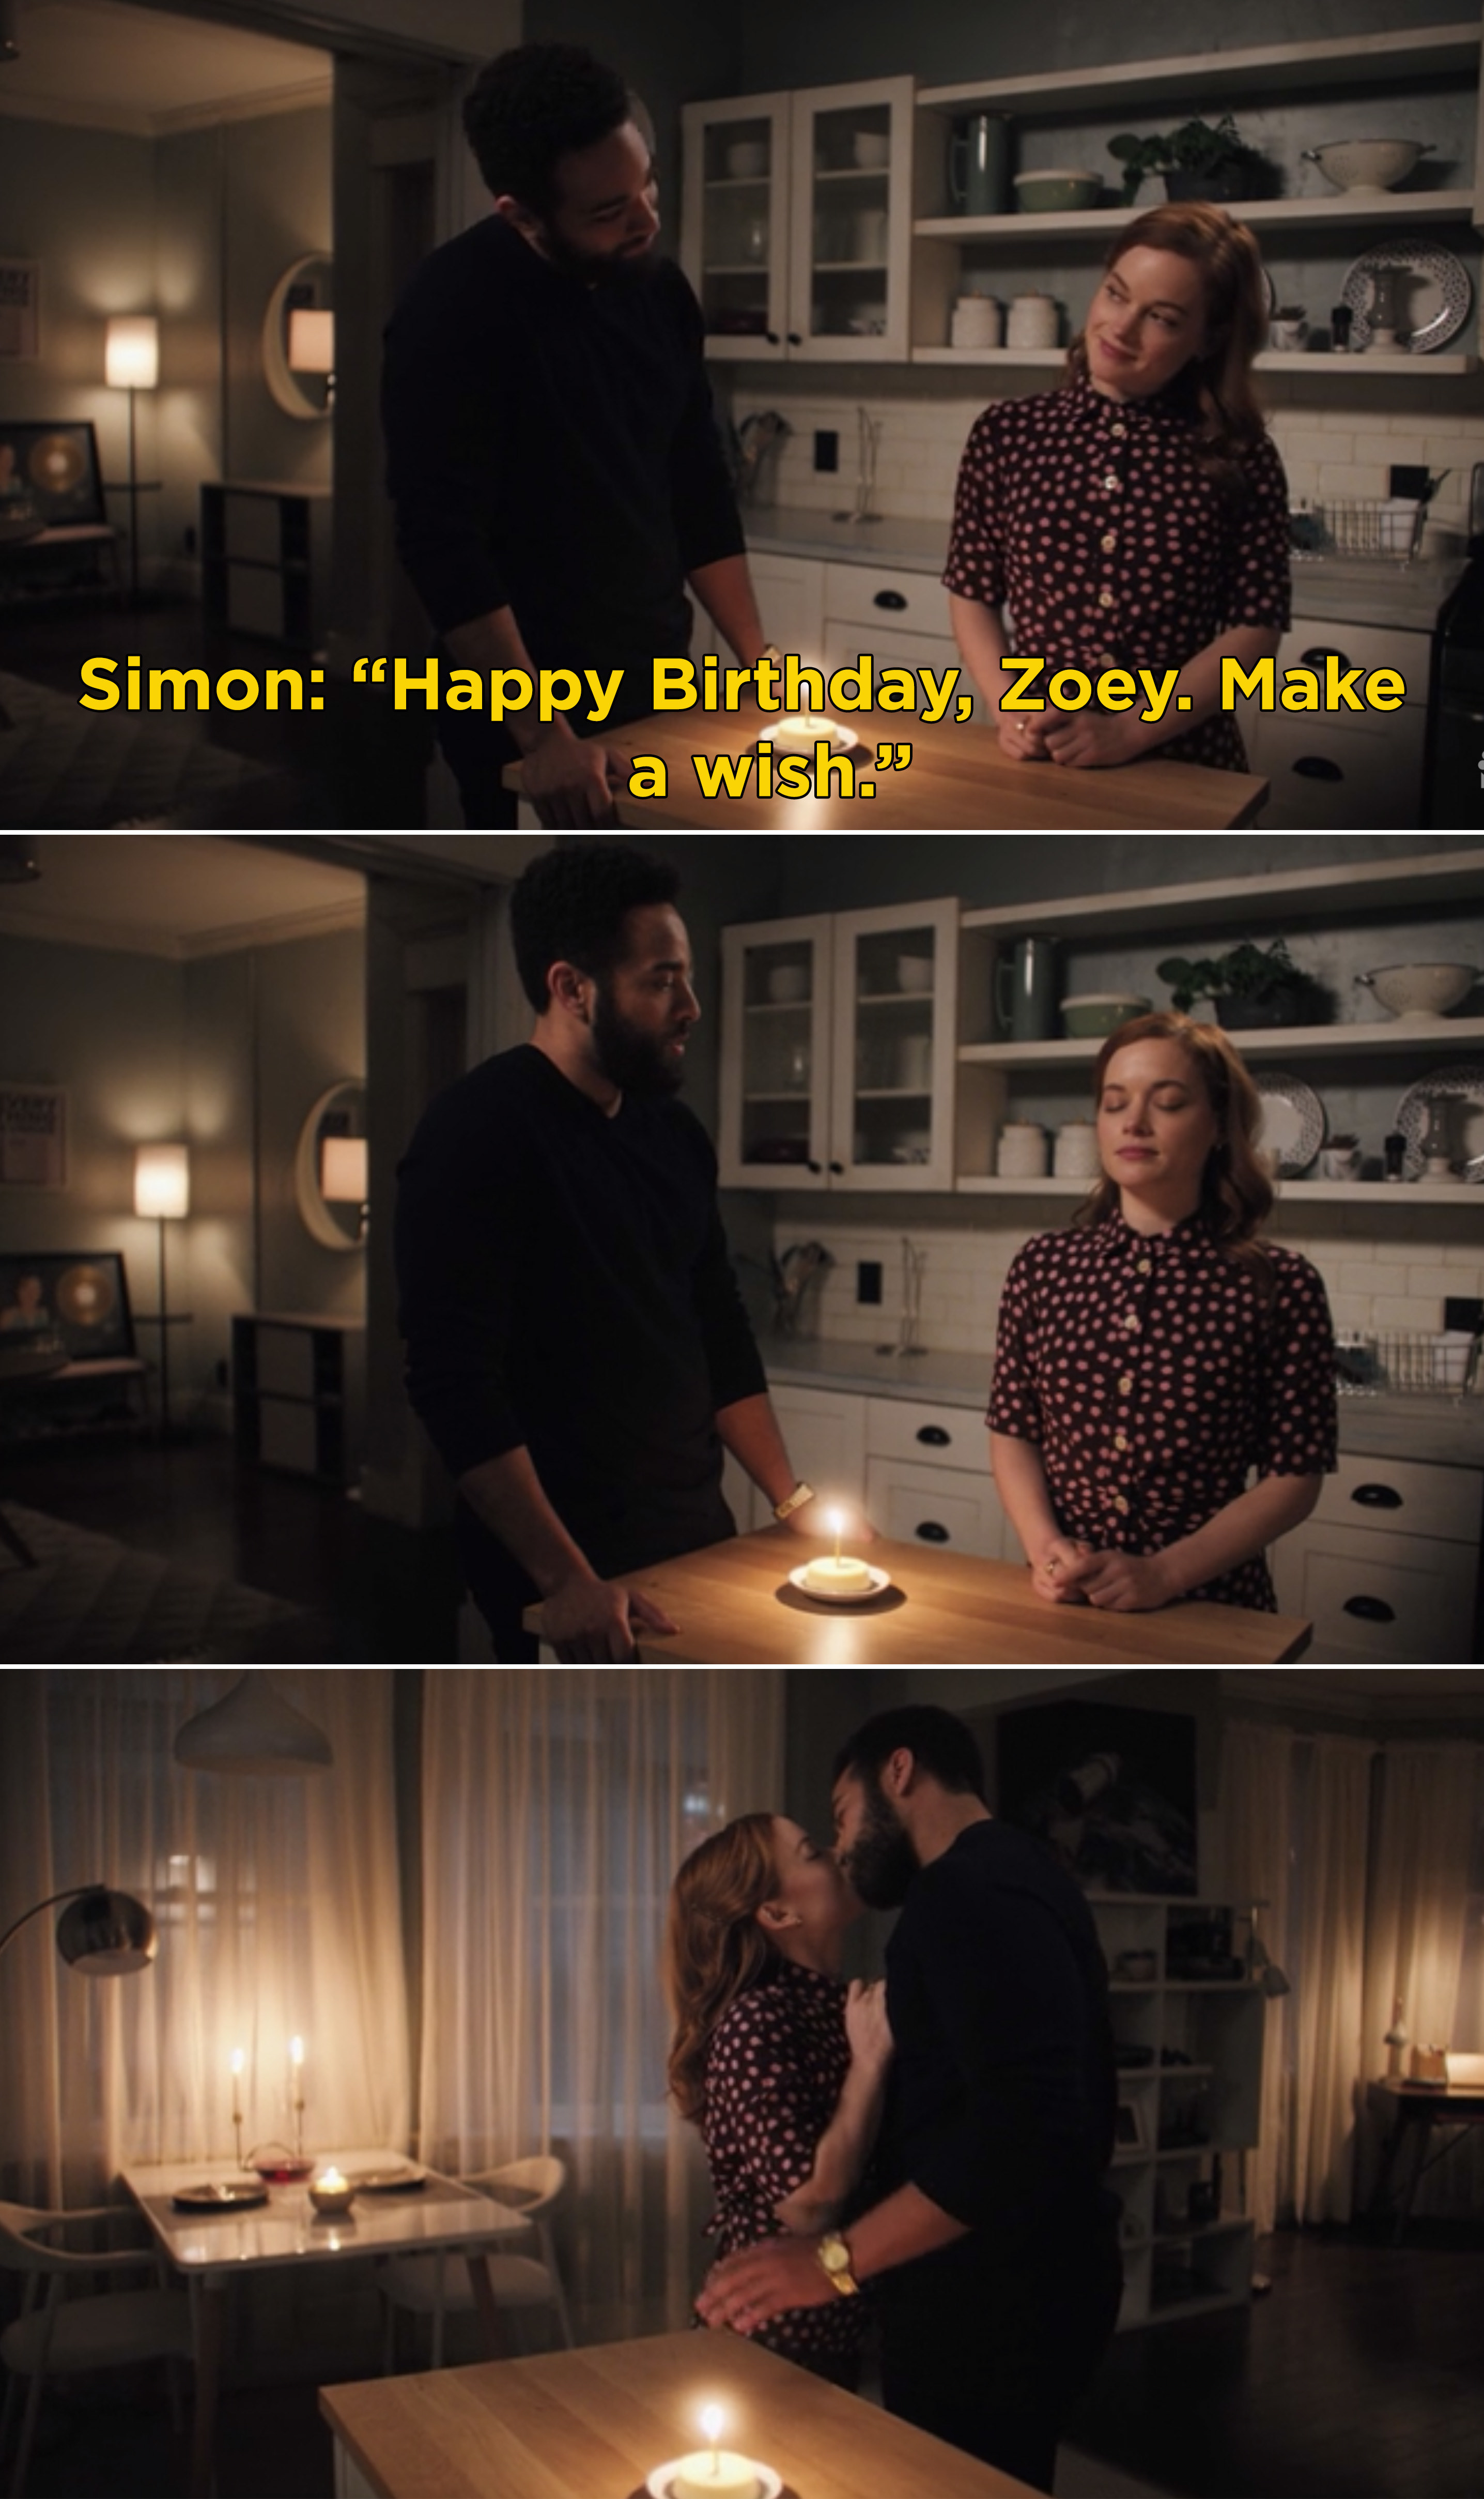 Simon wishing Zoey a happy birthday before they kiss